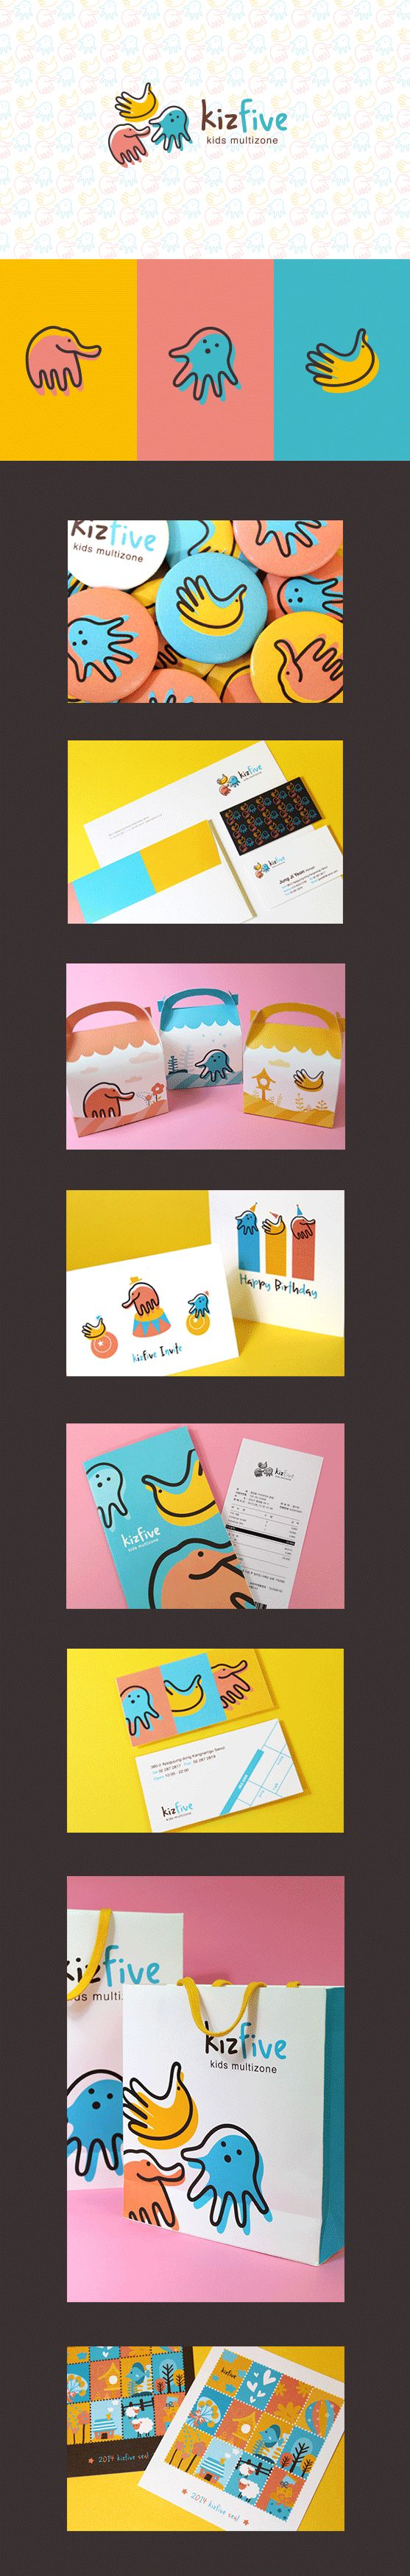 via 지연 정 on Behance. This project is submitted to the University of assignments Kids Cafe branding design project. Packaging smile file : ) PD